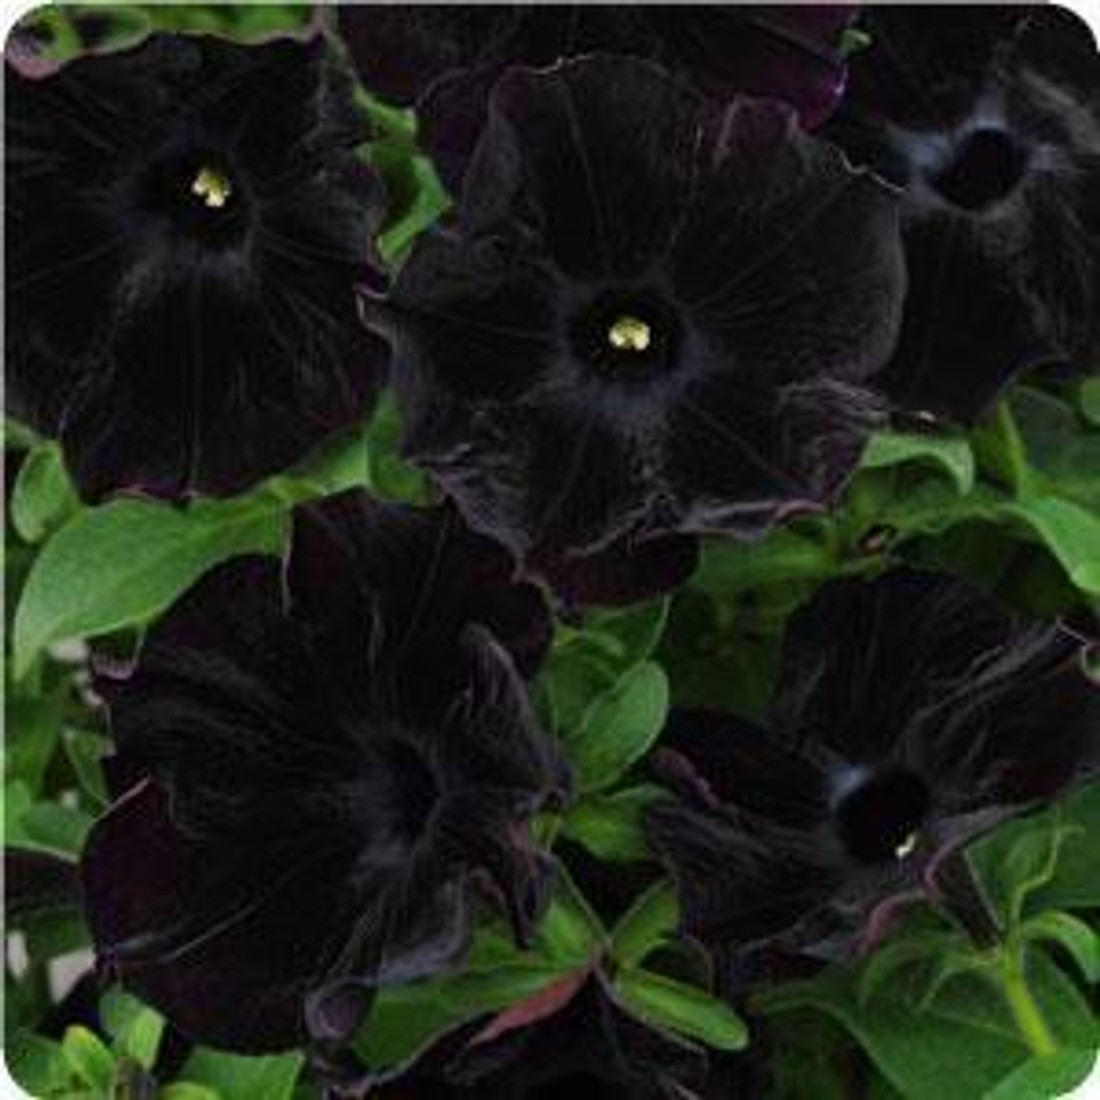 Petunia hybrida 'Black Magic'